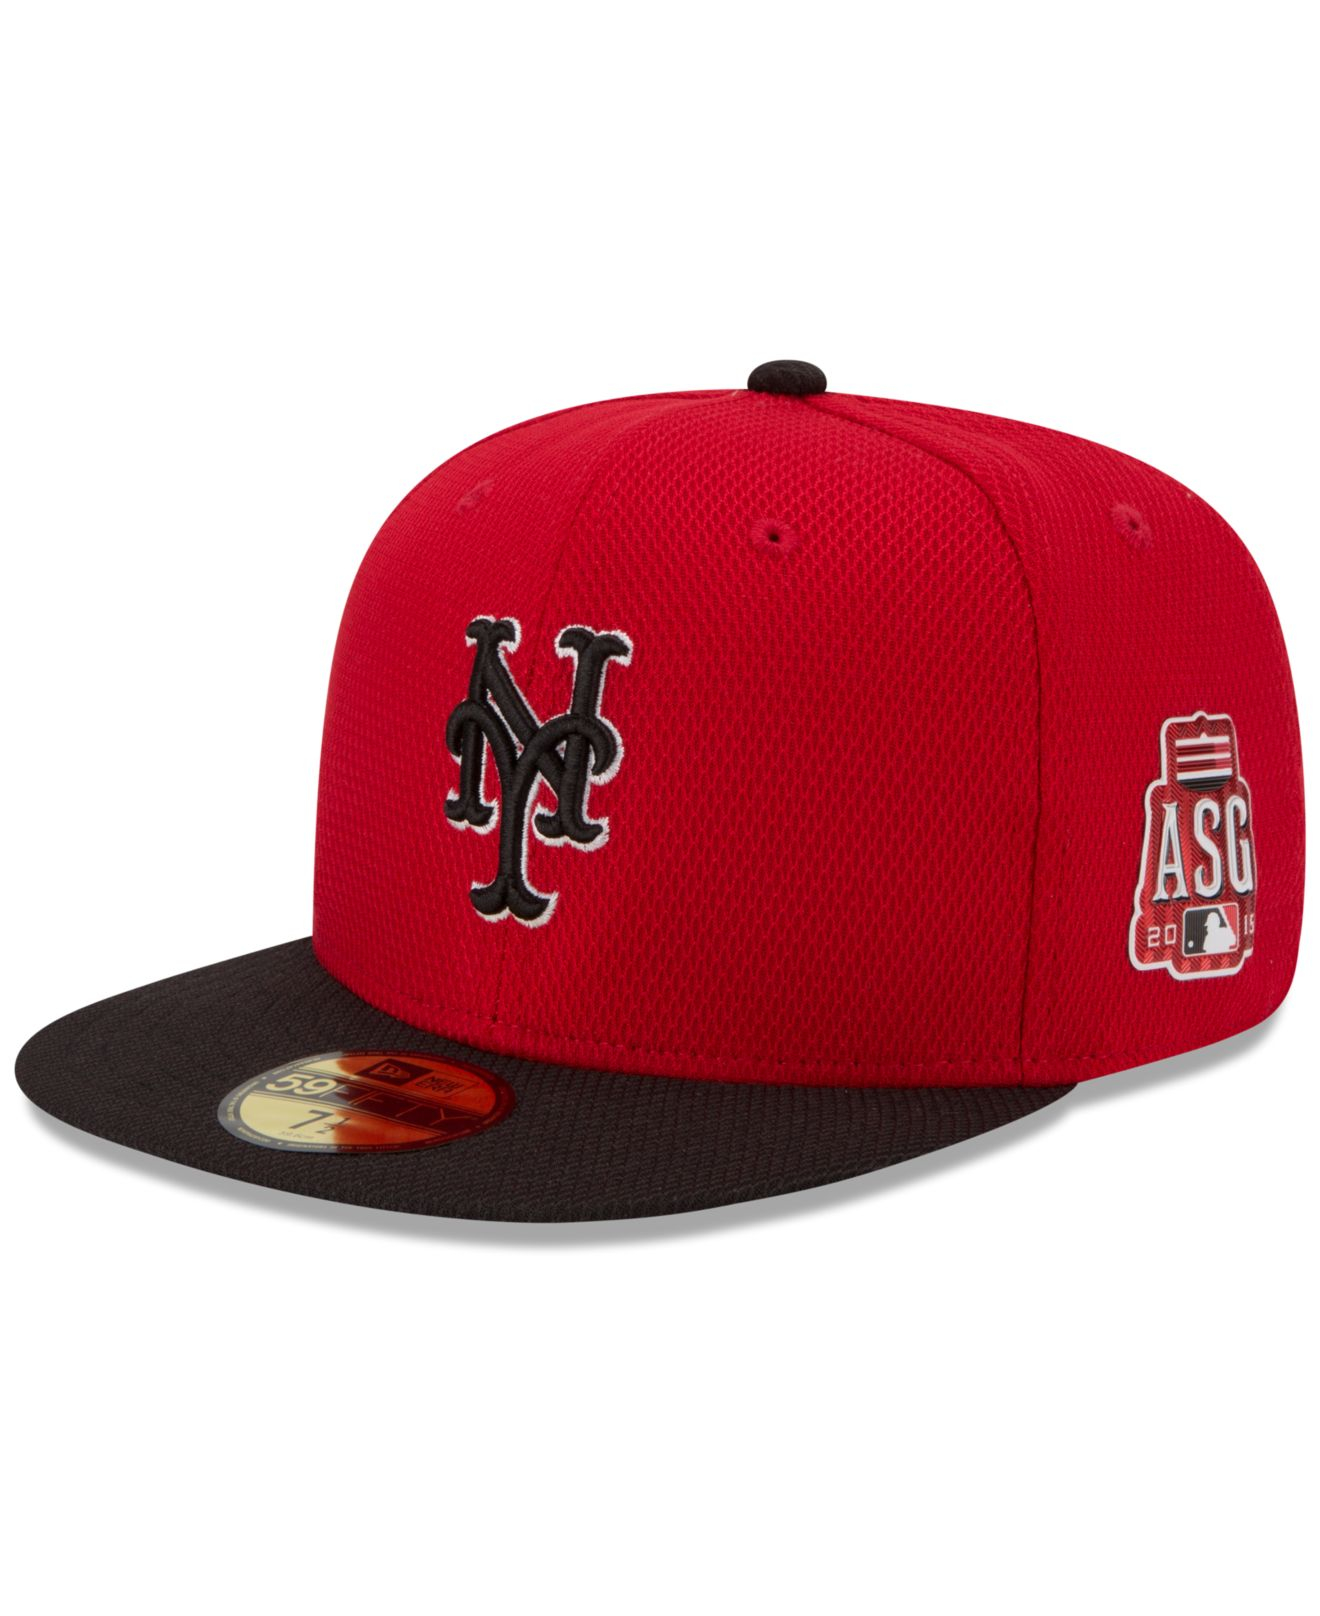 Lyst - KTZ New York Mets 2015 Home Run Derby 59Fifty Cap in Red for Men 129bbab5a1c